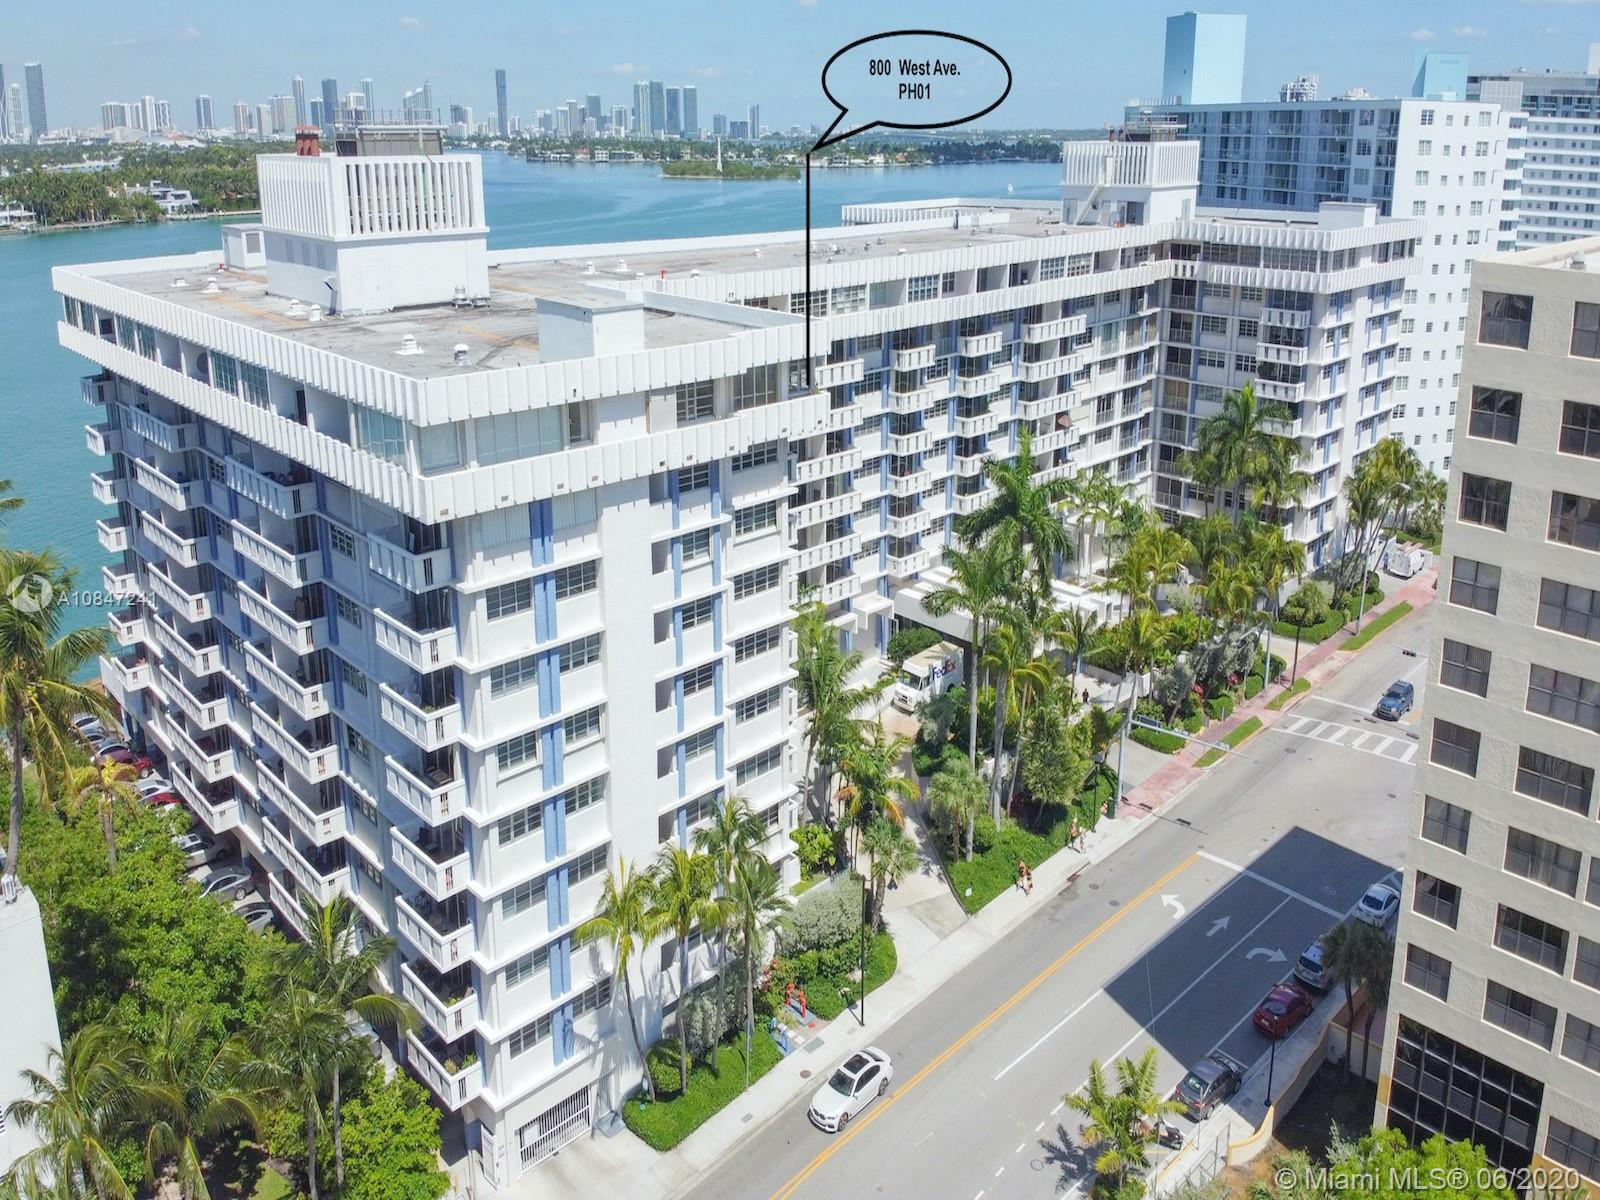 800  West Ave #PH01 For Sale A10847241, FL